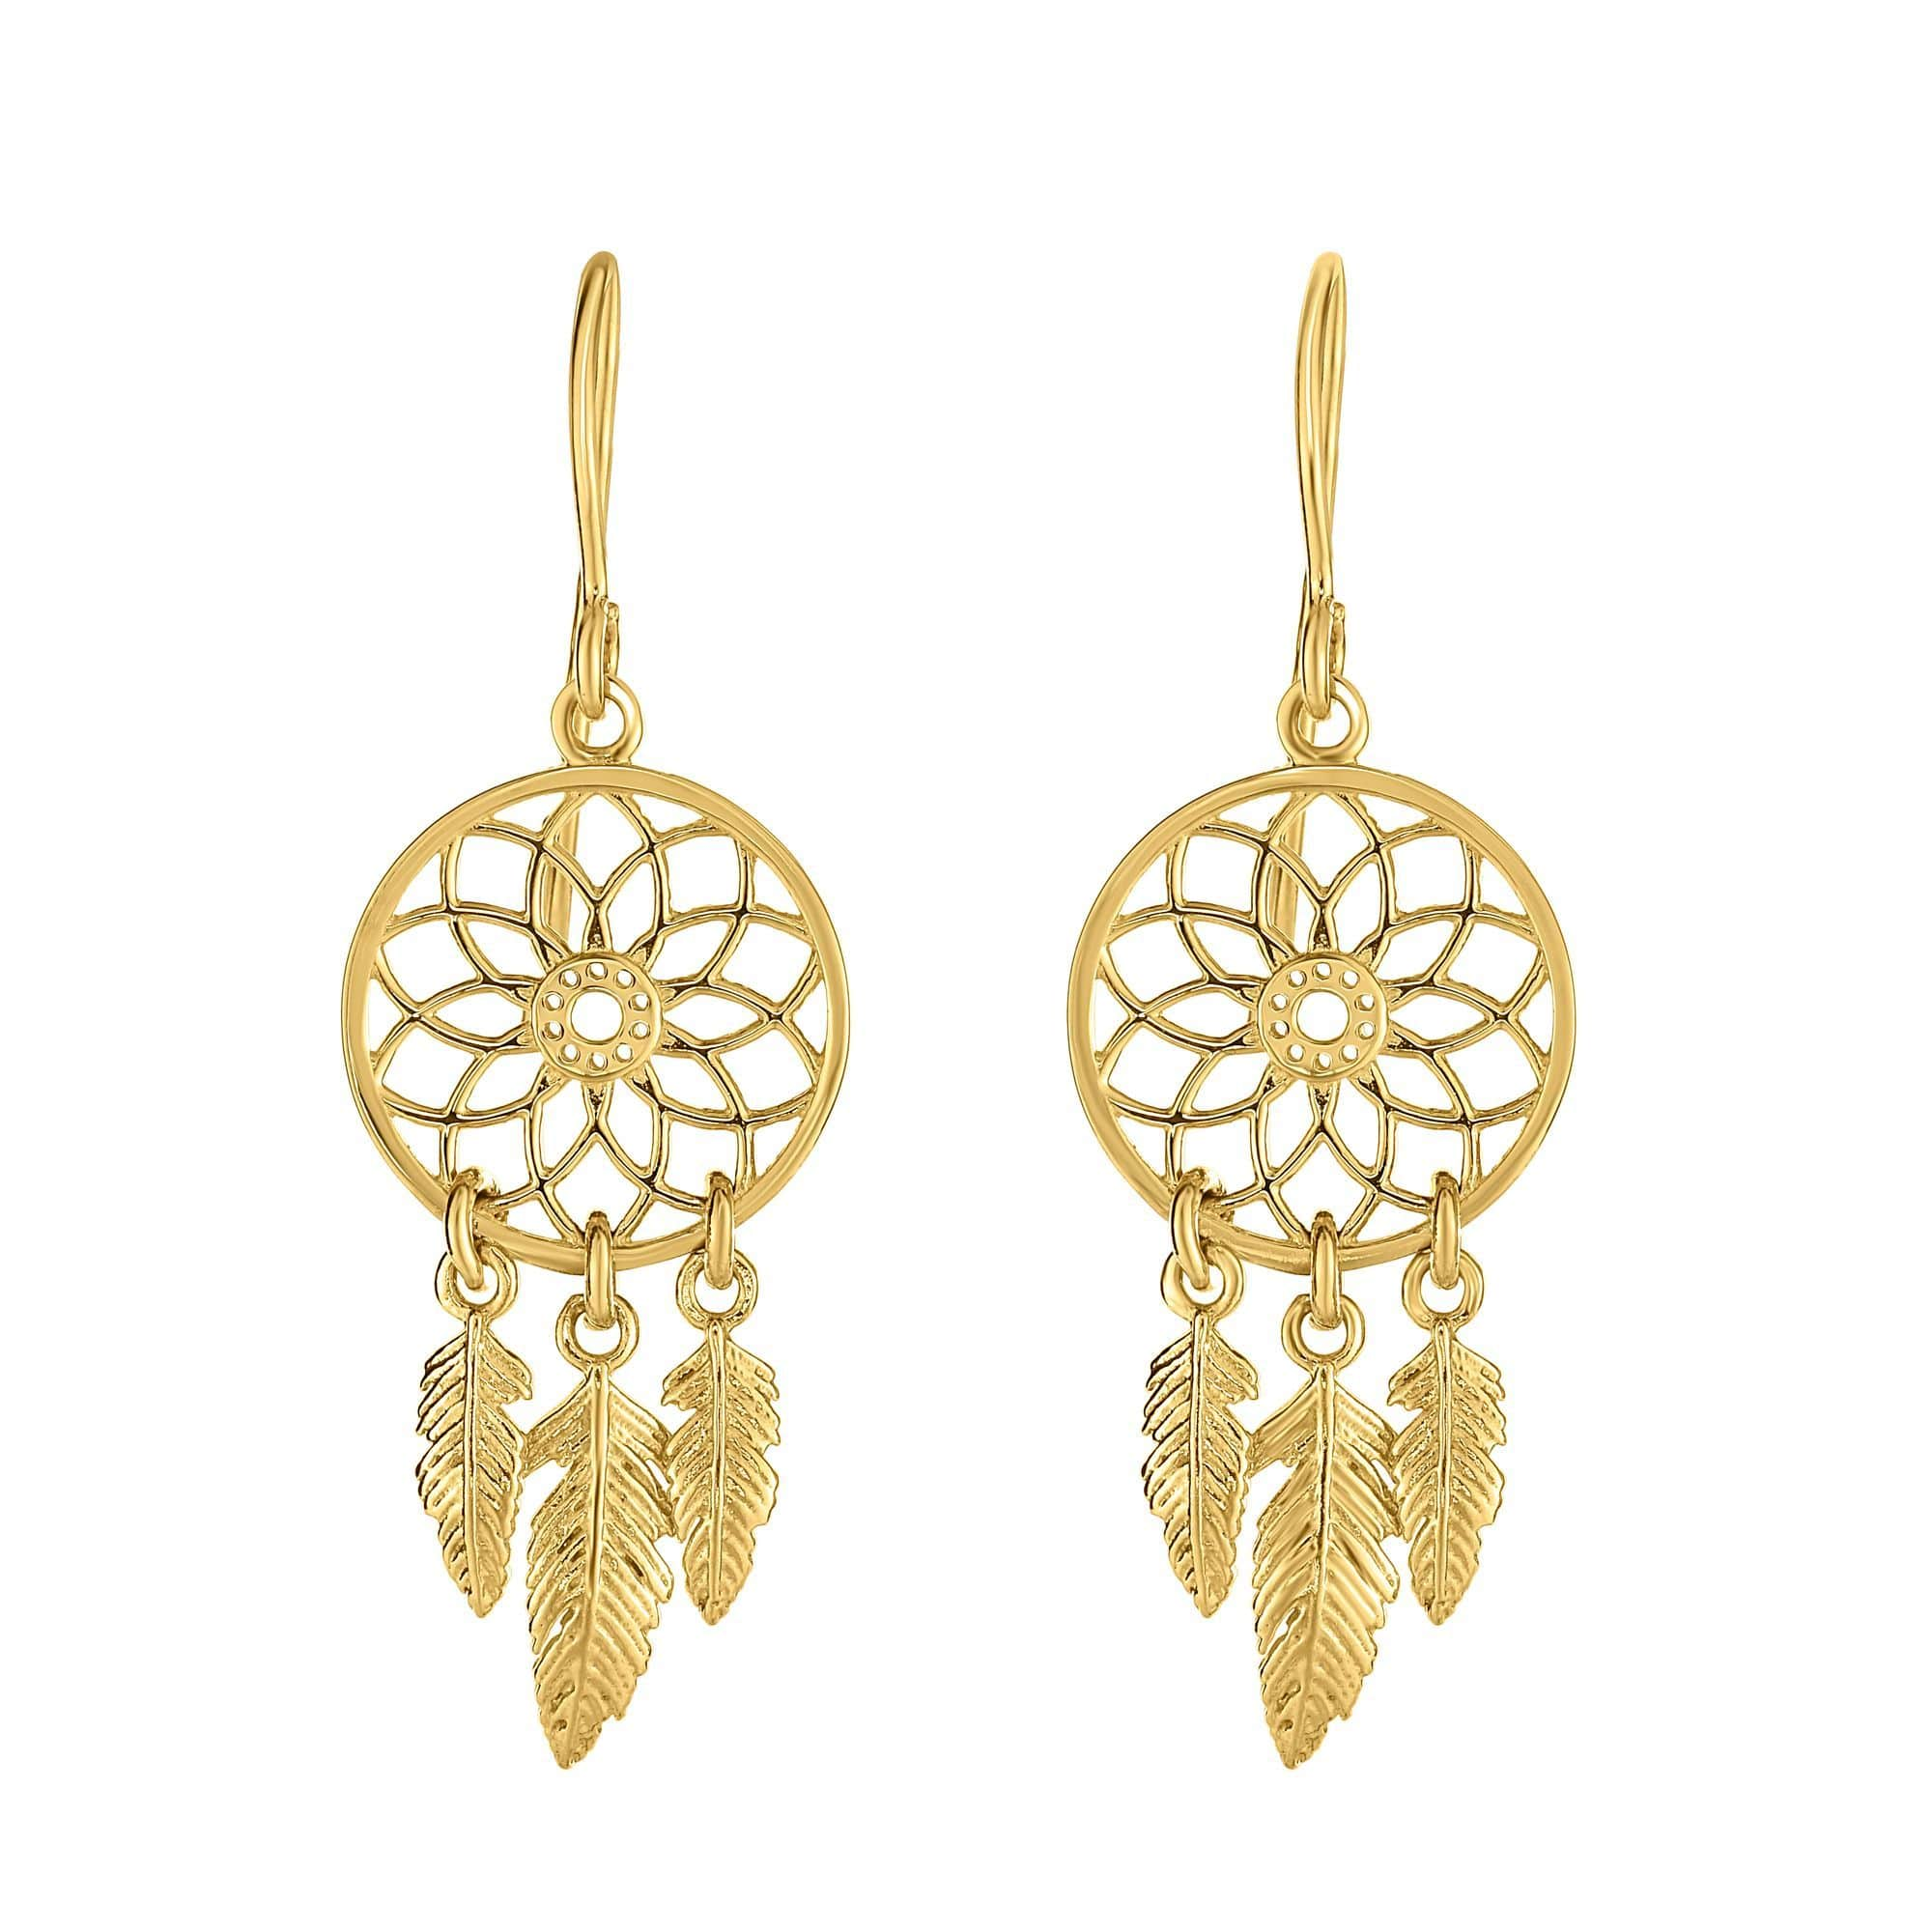 14 Karat Yellow Gold Dangling Dream Catcher Earrings